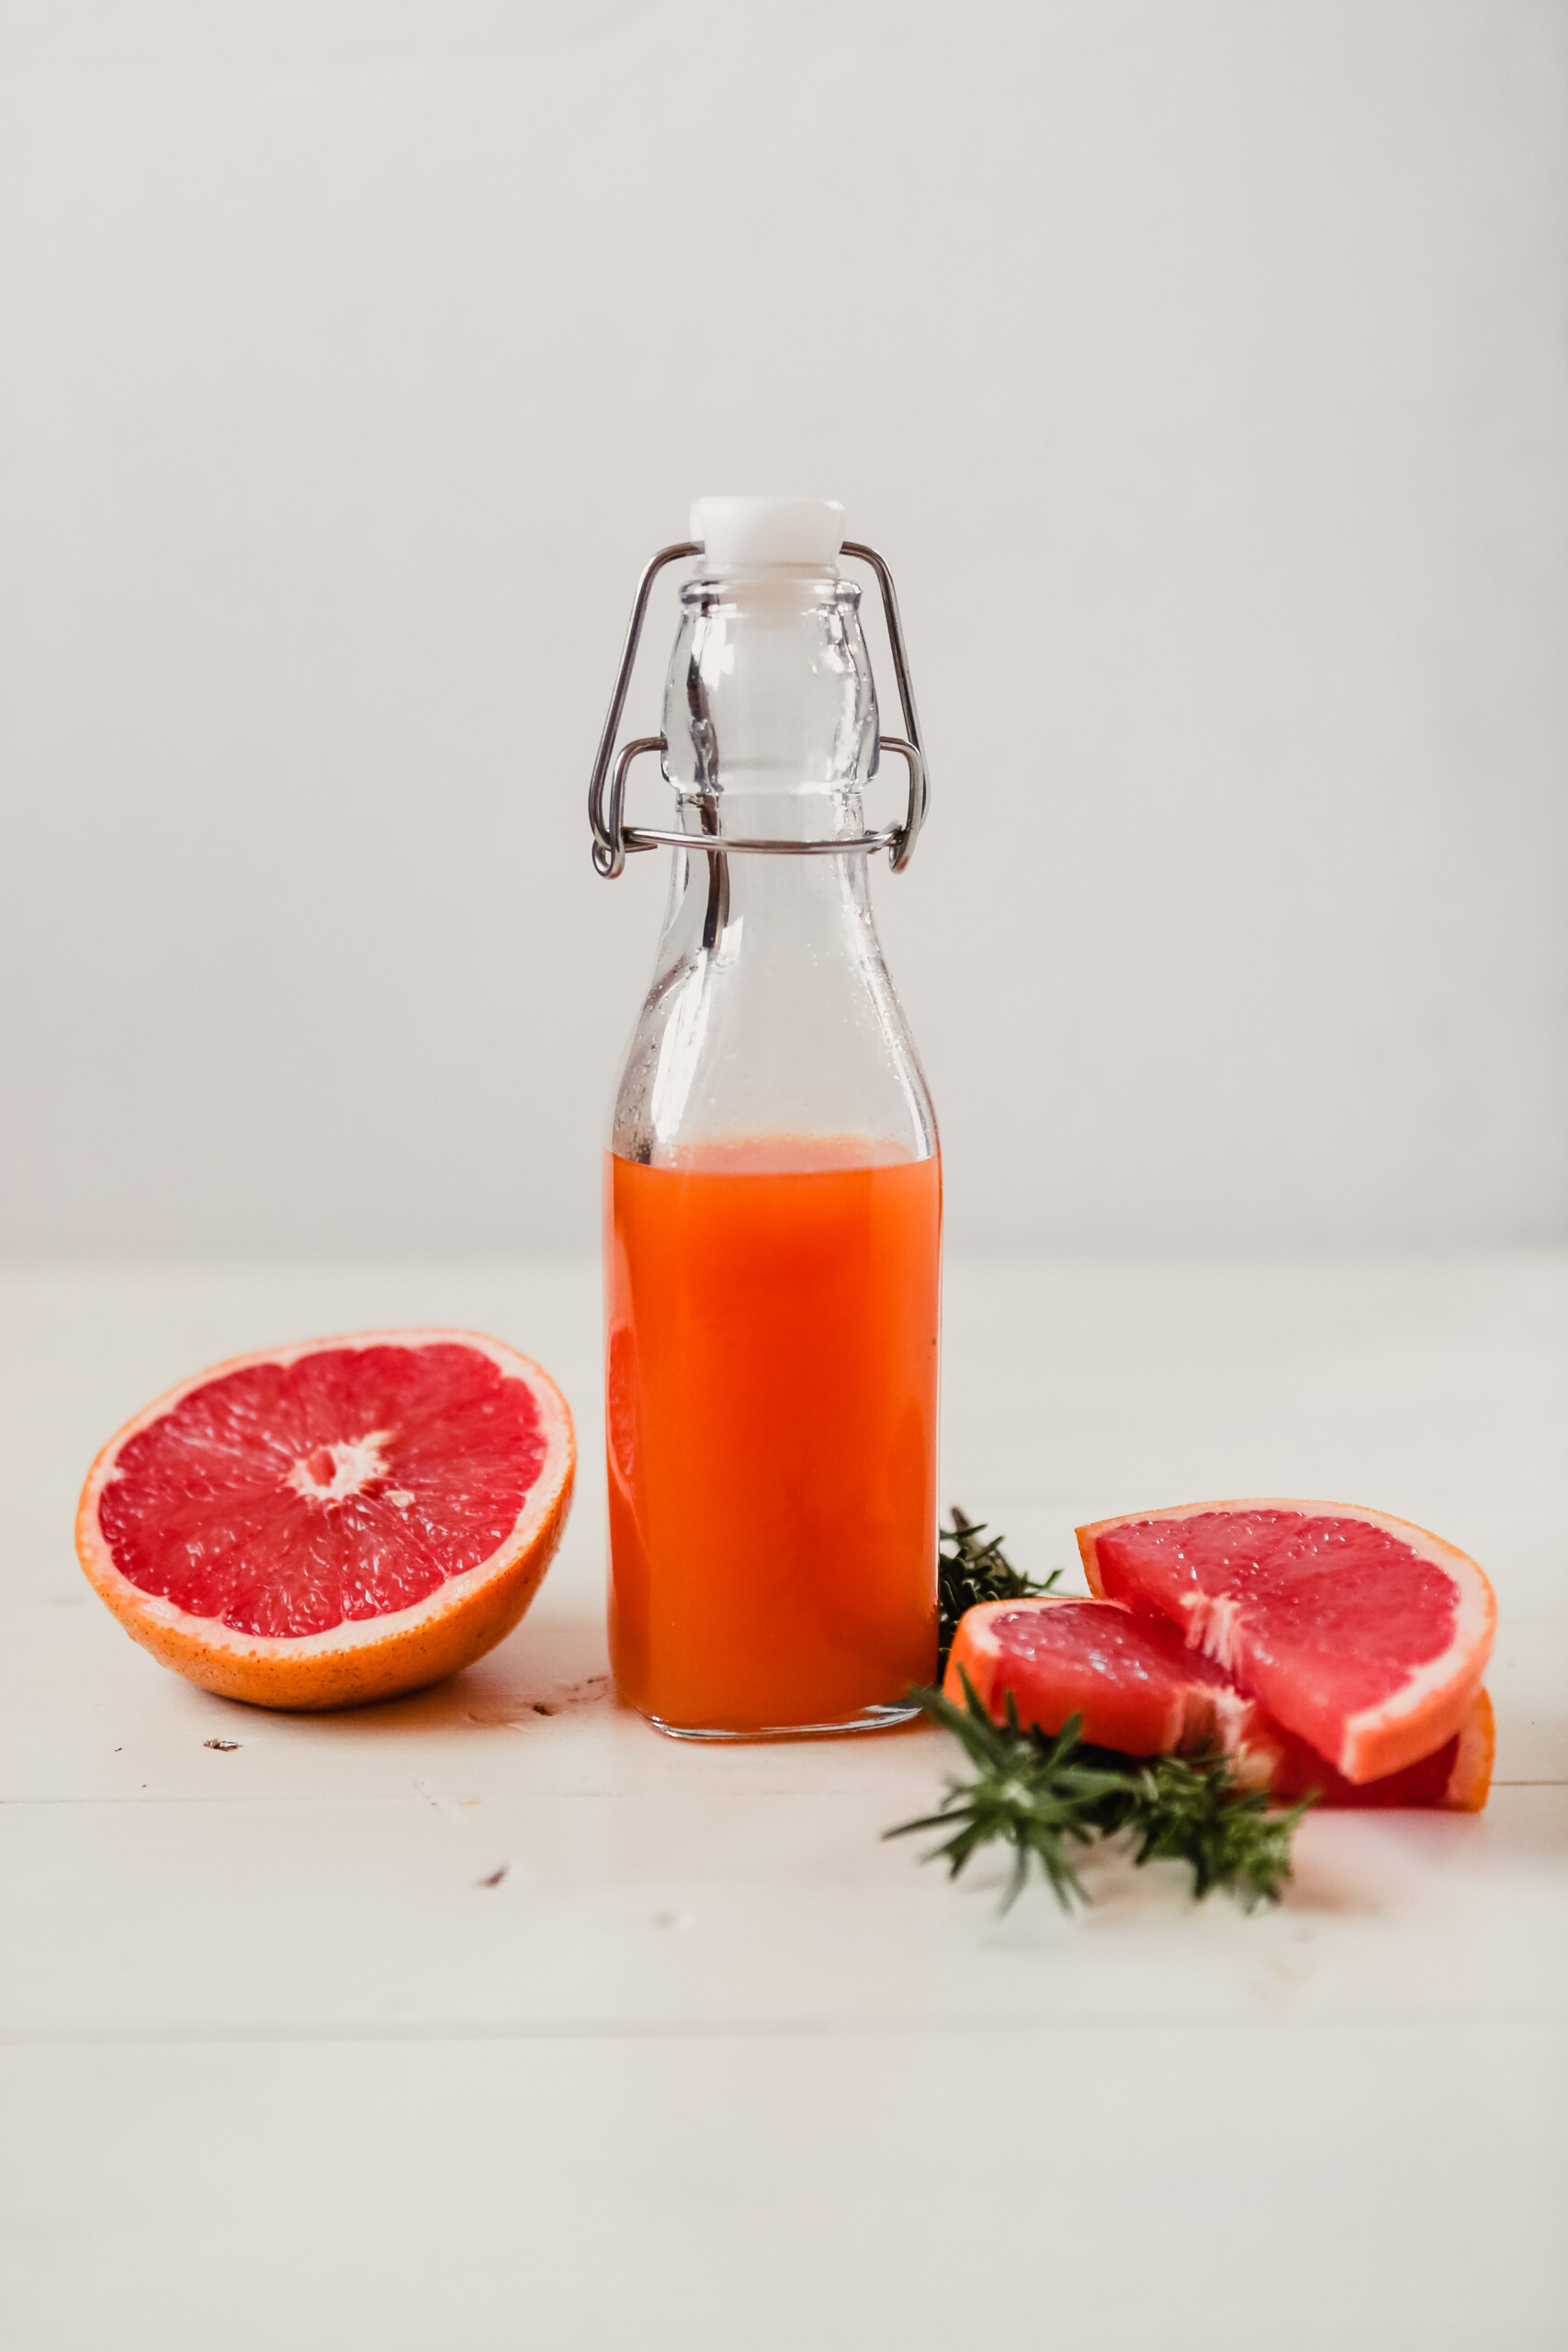 Photograph of homemade grapefruit soda syrup in a glass bottle.